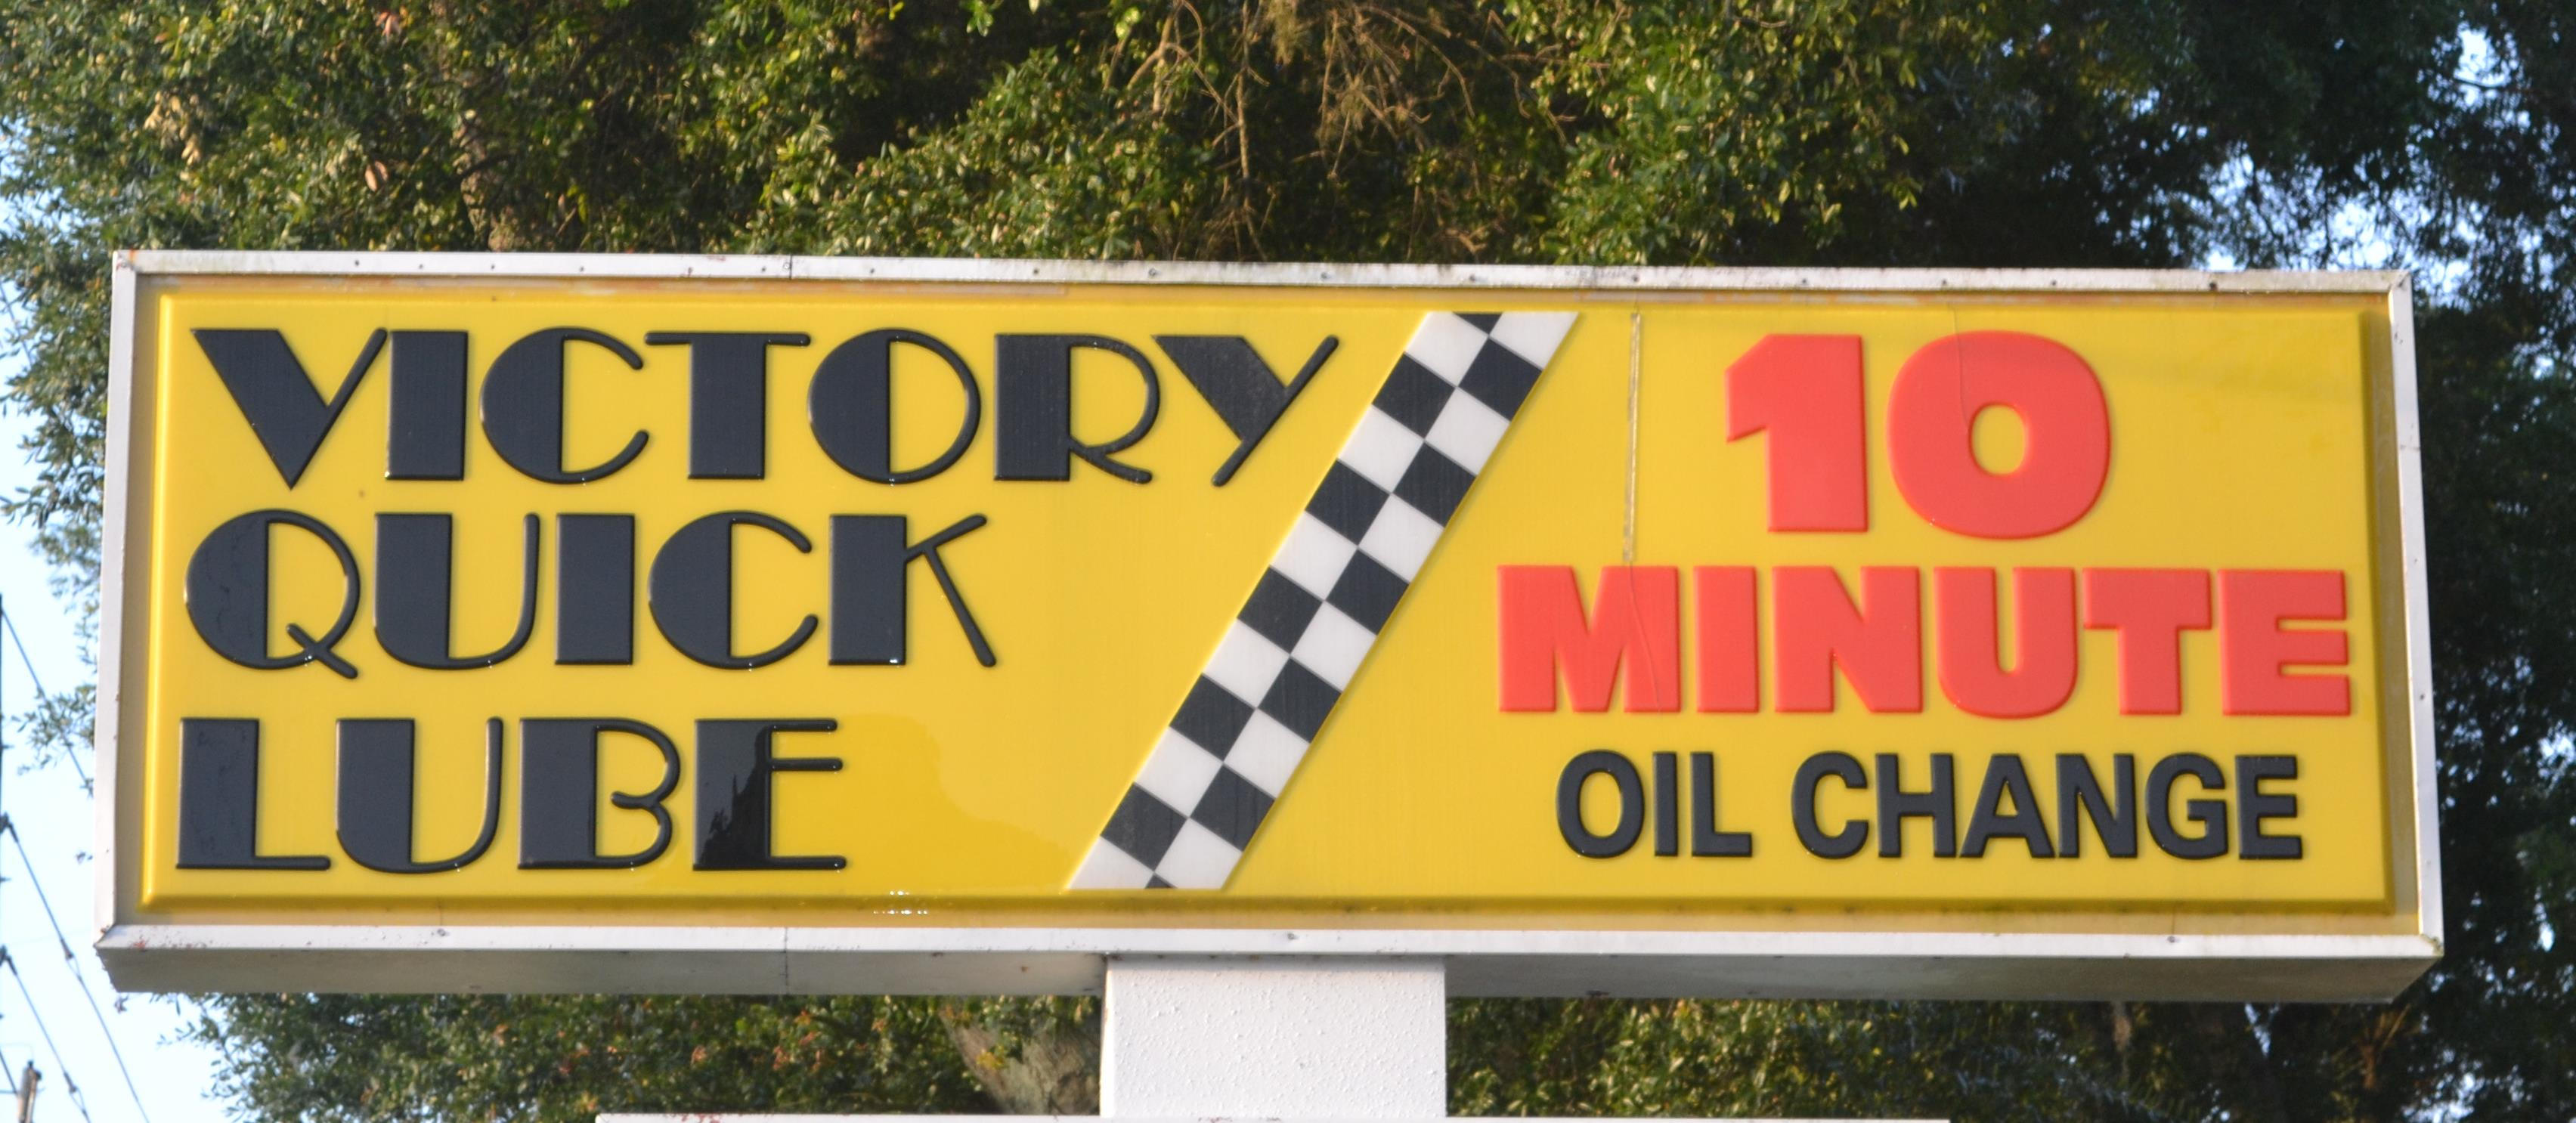 Victory Quick Lube Inc